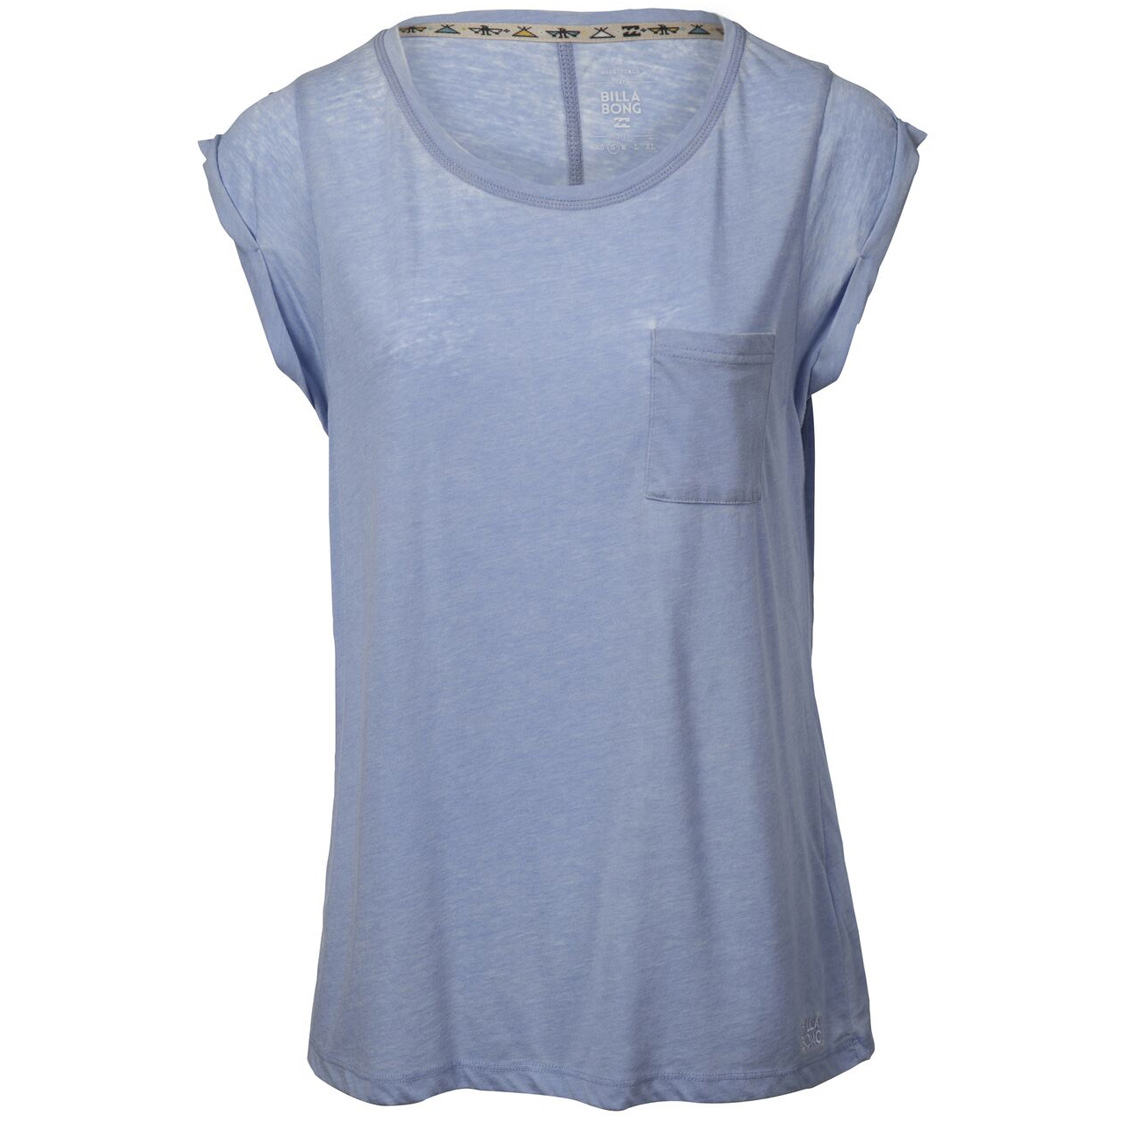 Womens billabong blue essentials tshirt